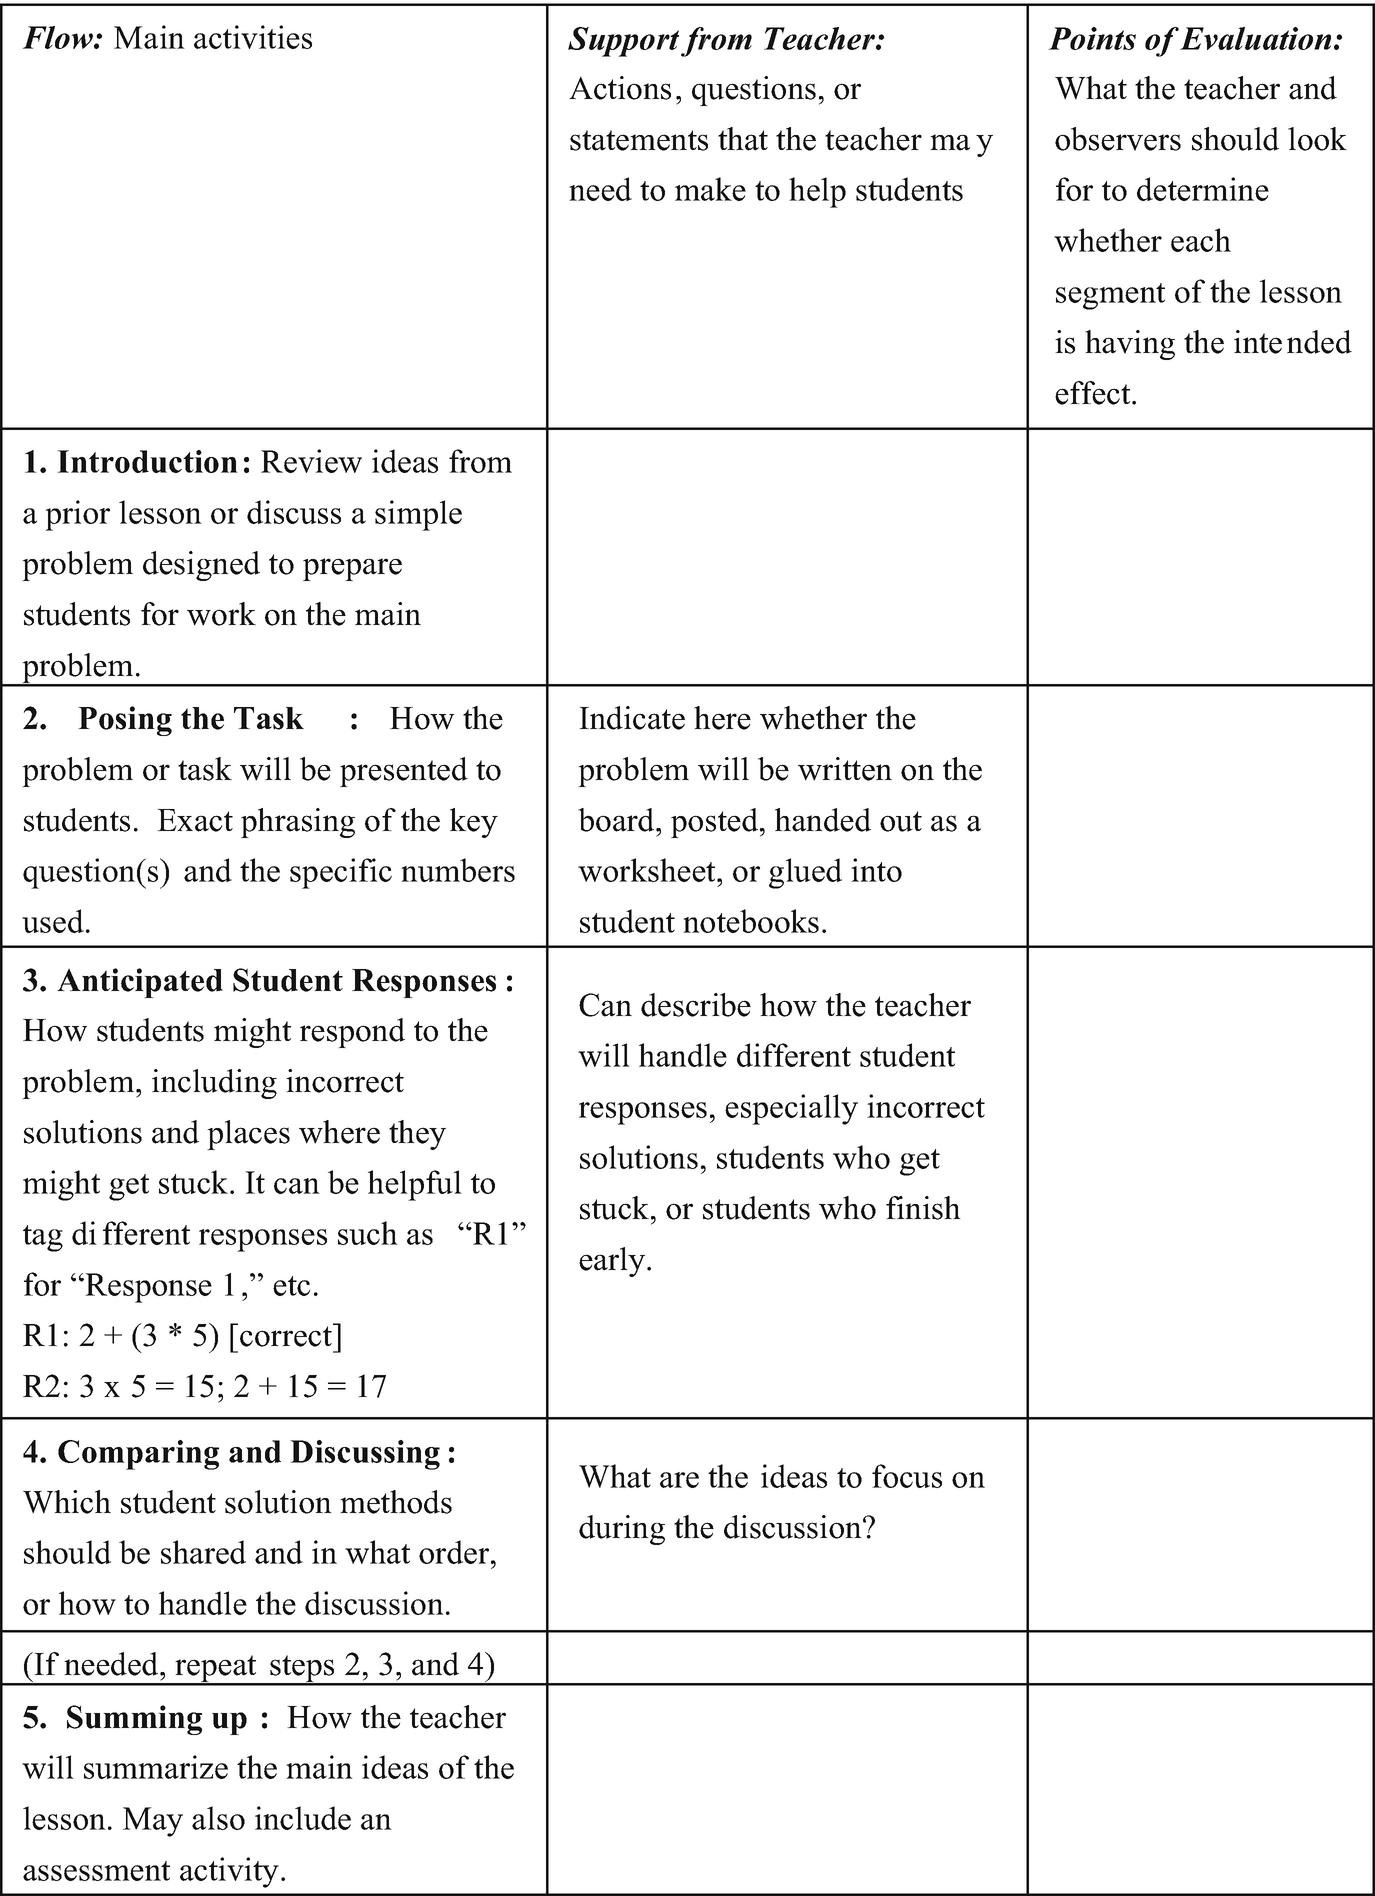 Using School-Wide Collaborative Lesson Research to Implement